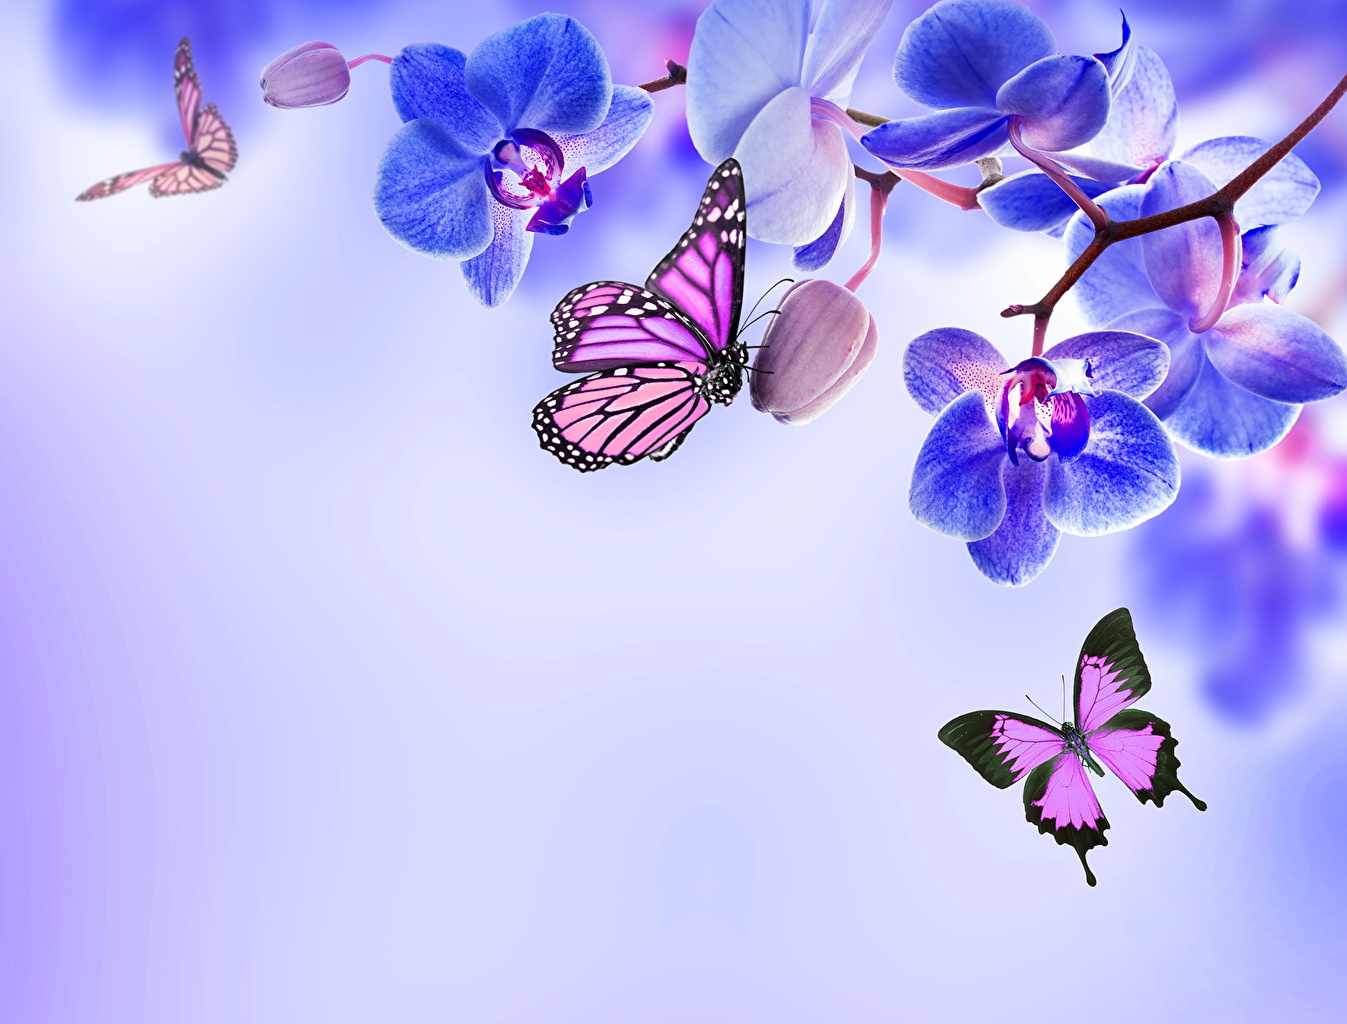 Wallpapers Monarch butterfly Butterflies Orchid Flowers 1347x1024